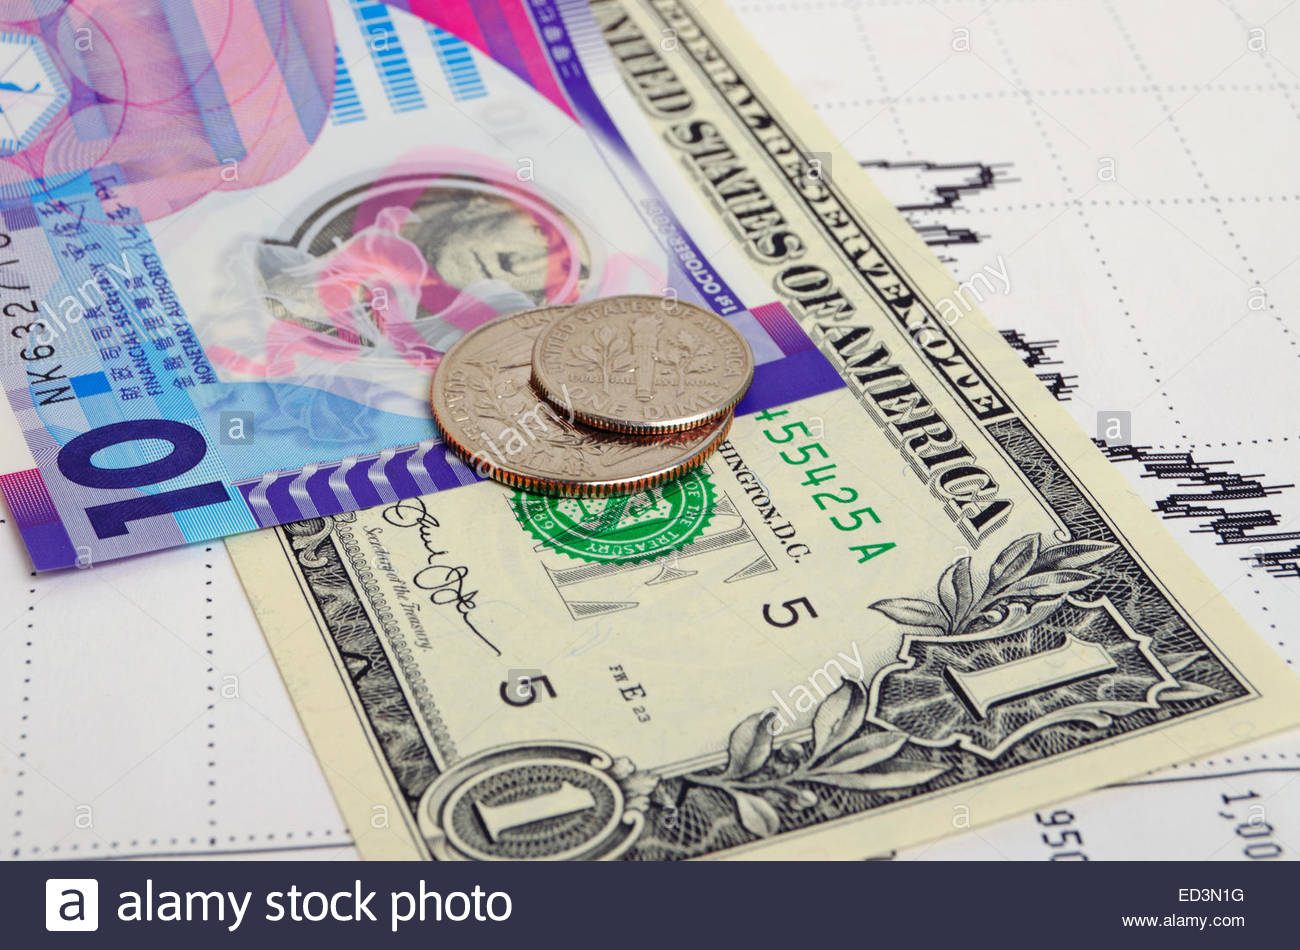 The Course Of Hong Kong Dollar To US